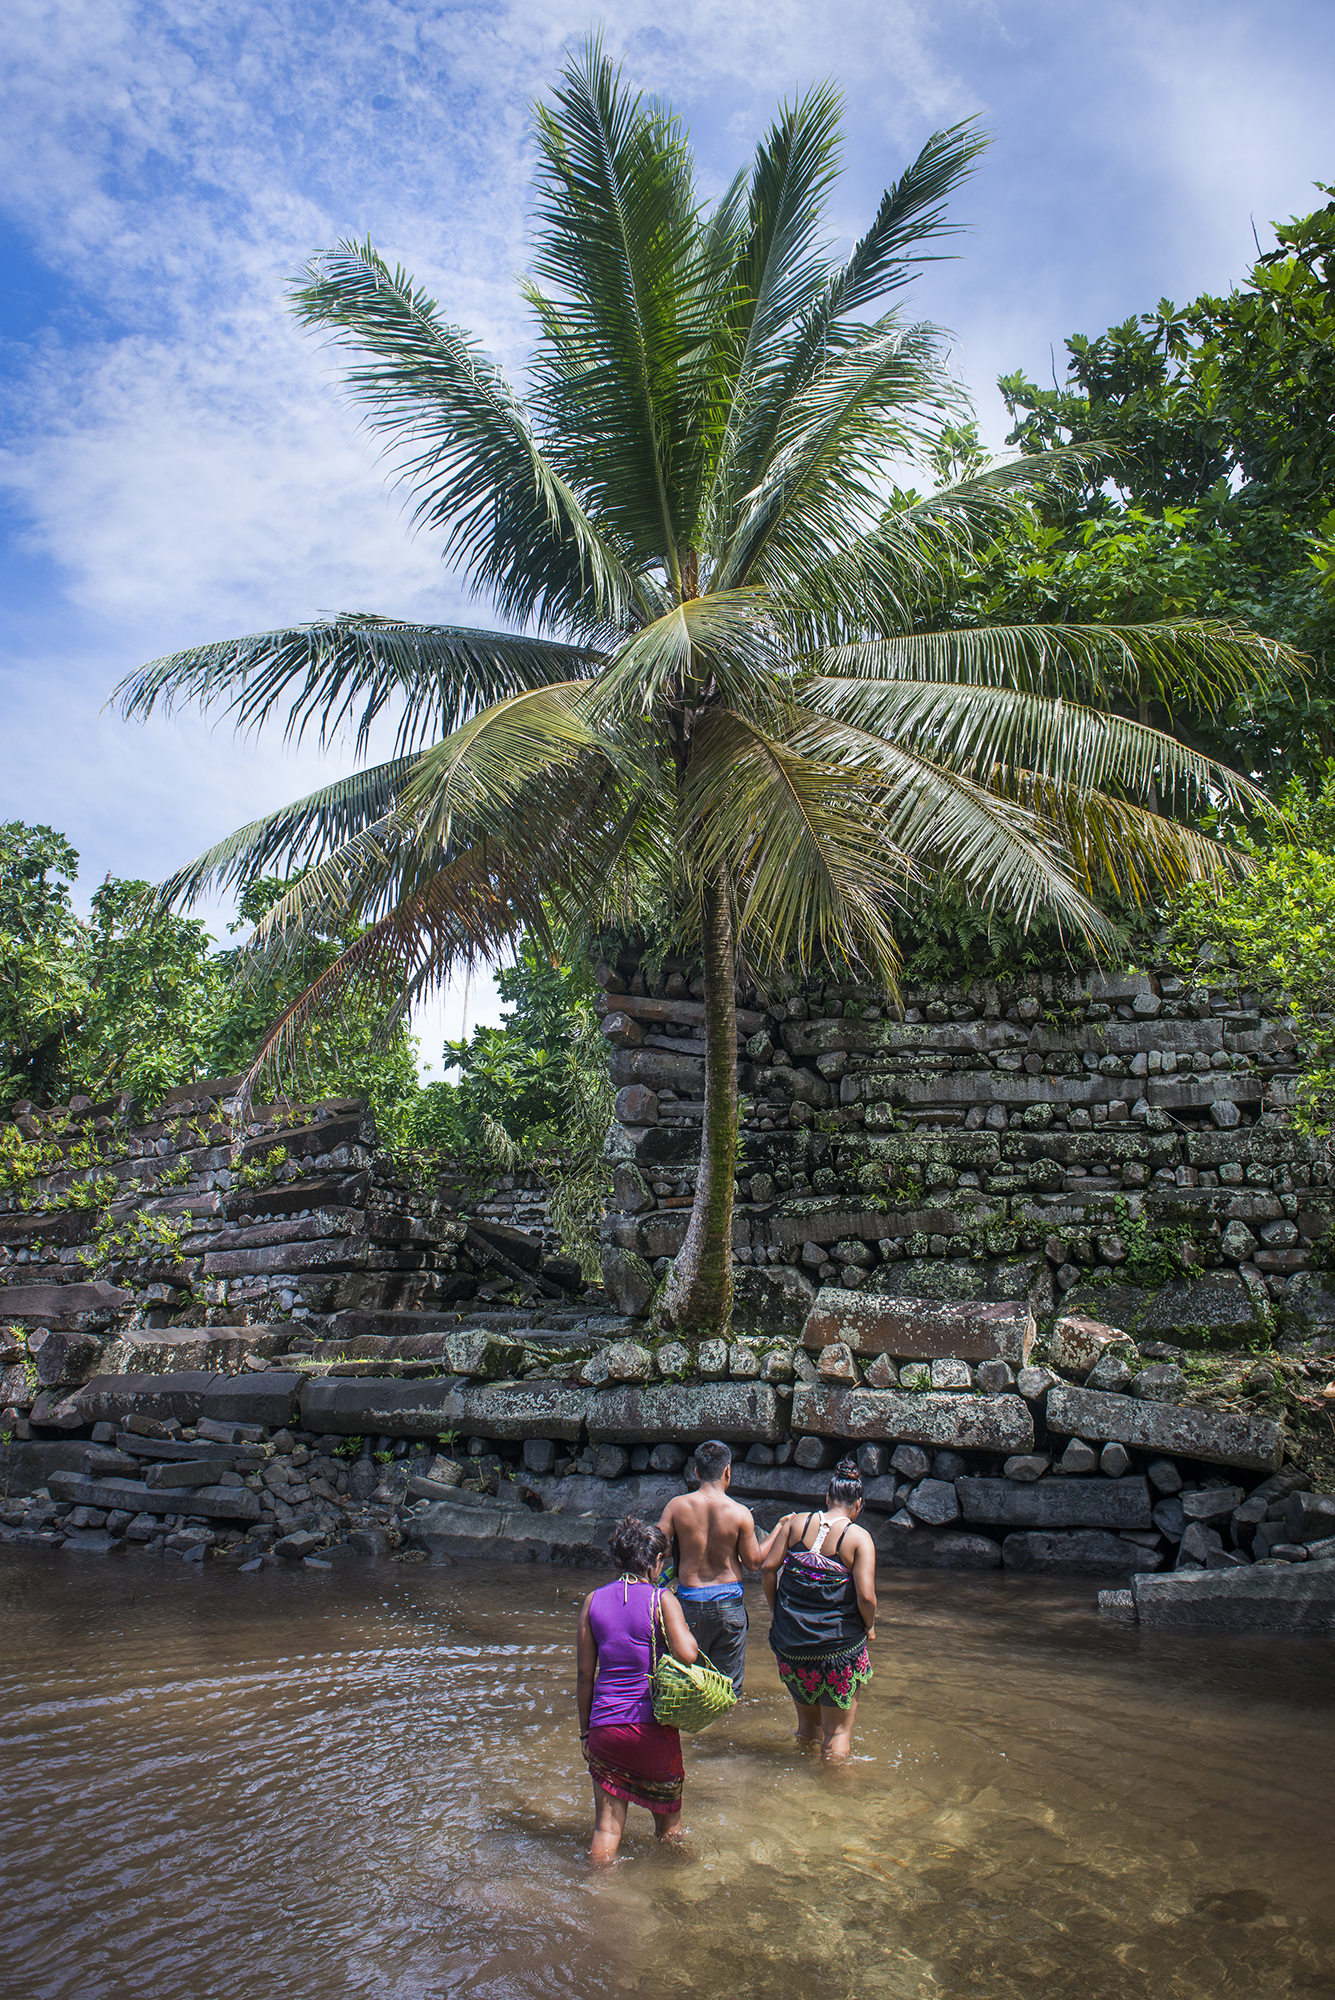 <p>For a small fee, locals will ferry visitors across the waterway that separates Nan Madol from Pohnpei. Or, you can take of your shoes and roll up your pants or skirt and wade across.</p>